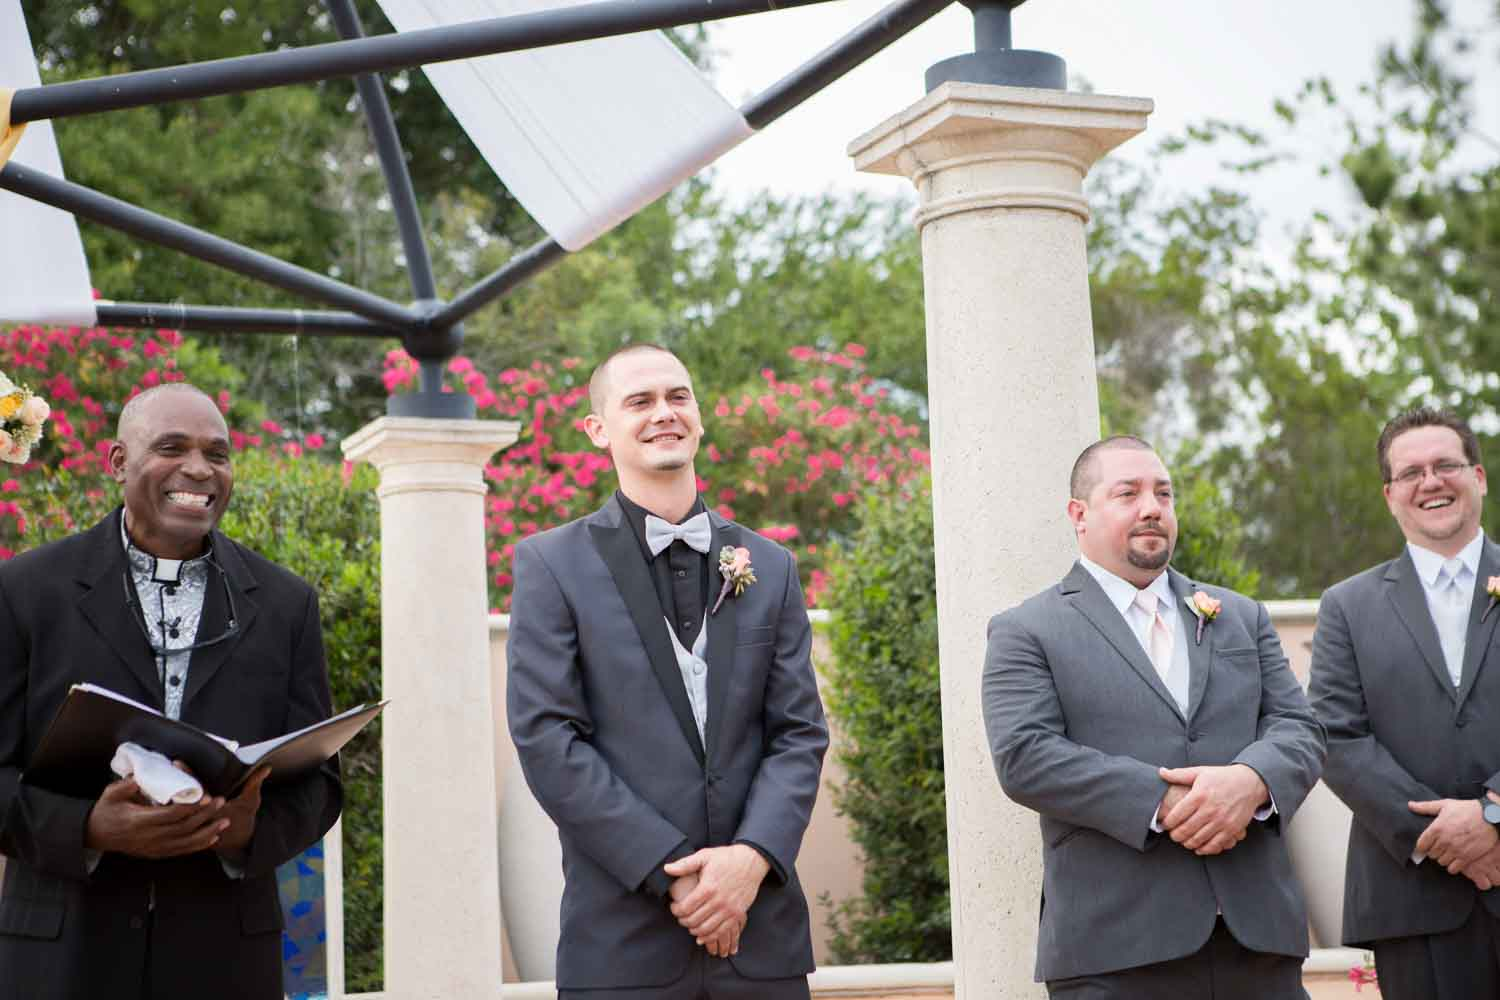 groom smiling while watching bride walk up aisle